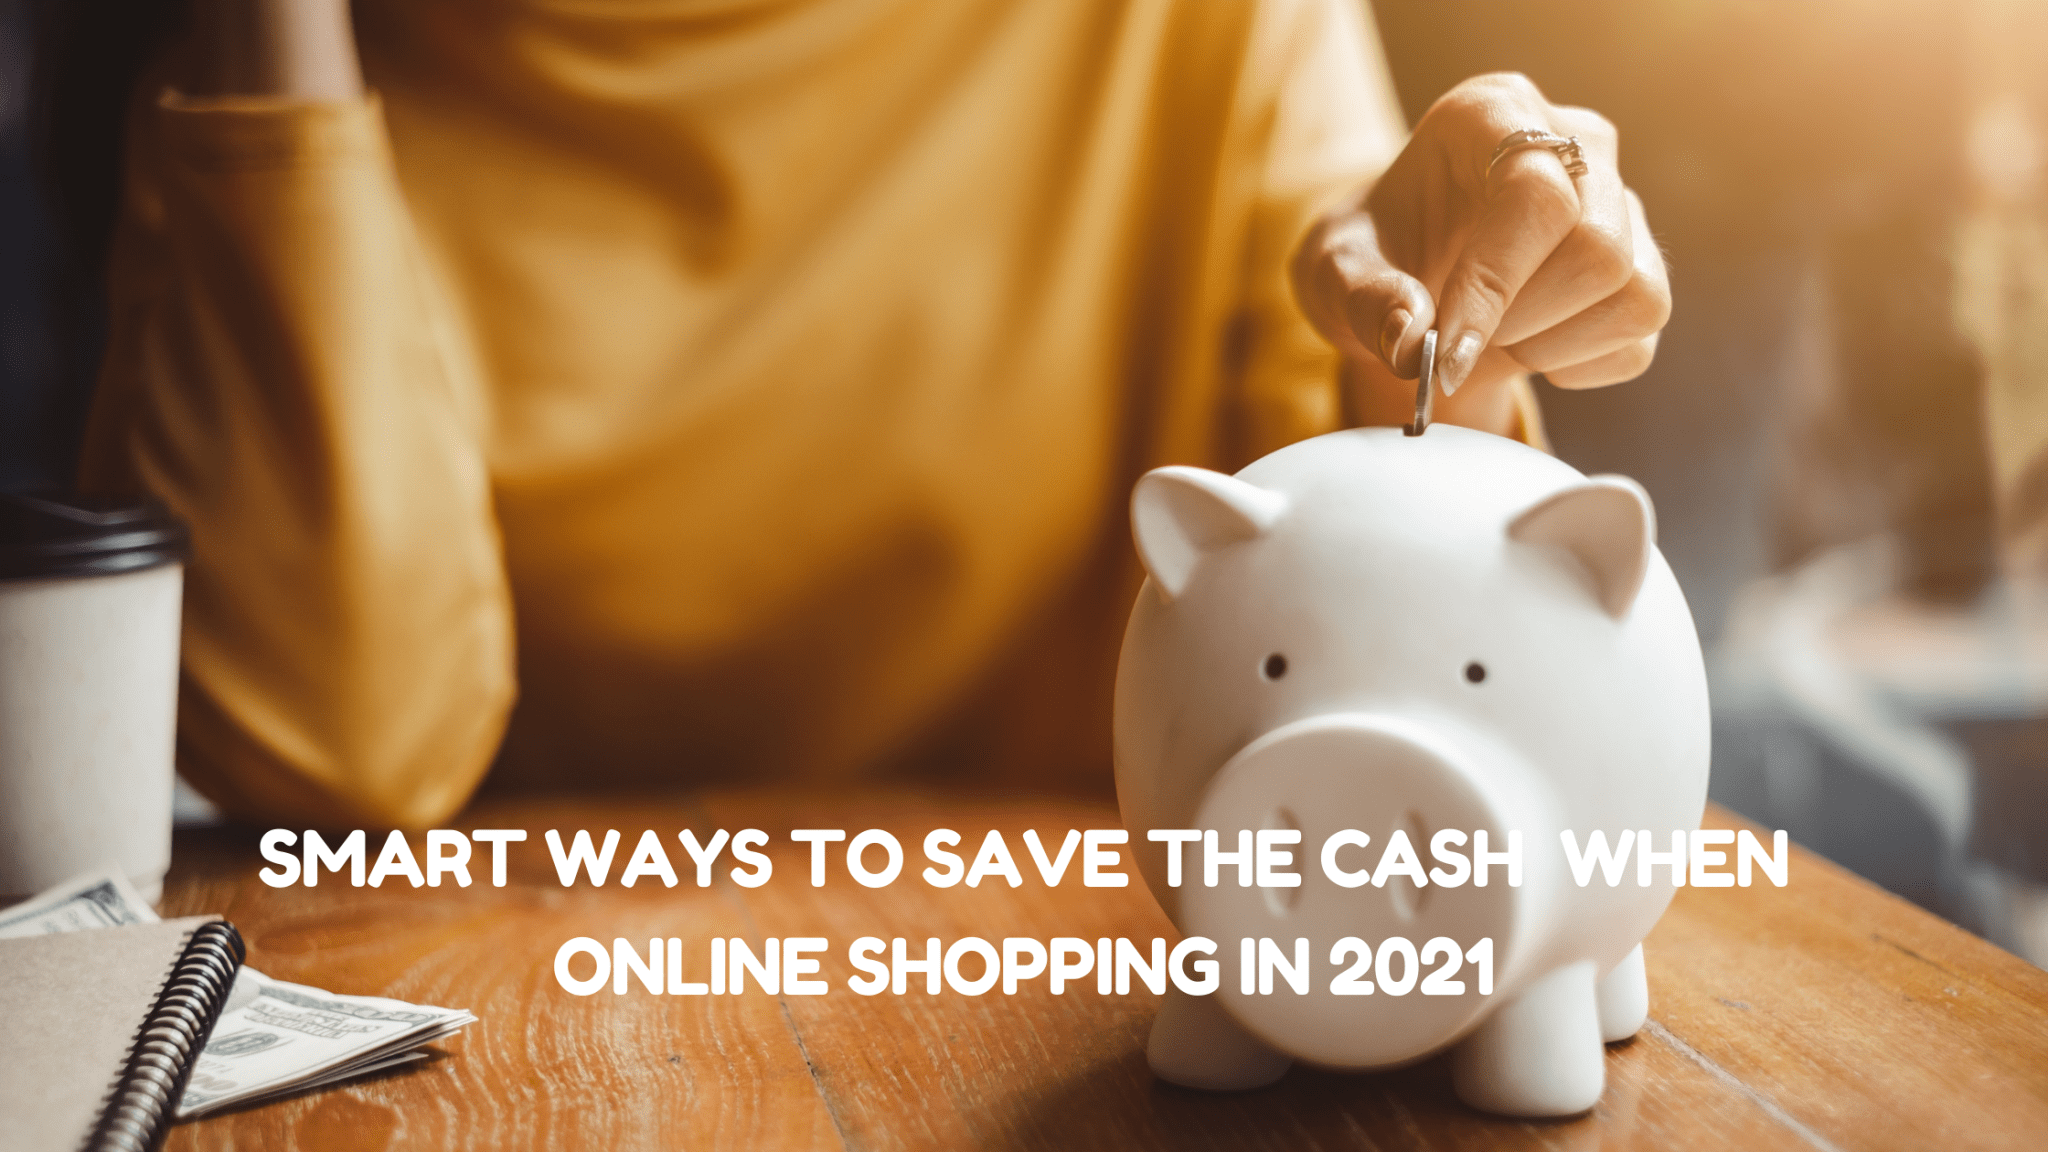 Smart Ways to Save The Cash When Online Shopping in 2021